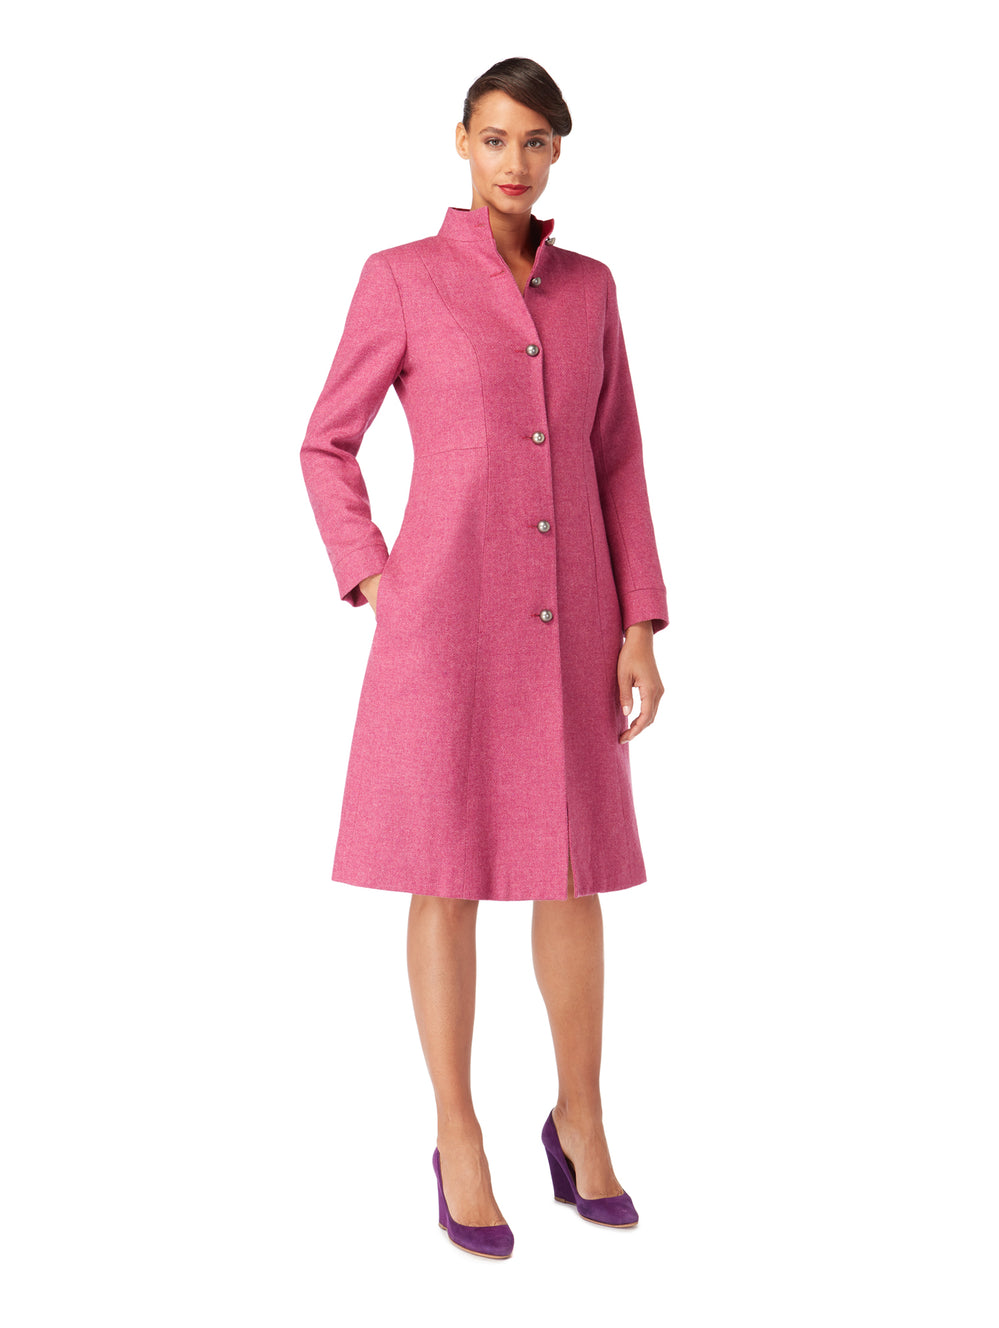 J043D _ PURLIEU _ Herringbone Dress Coat